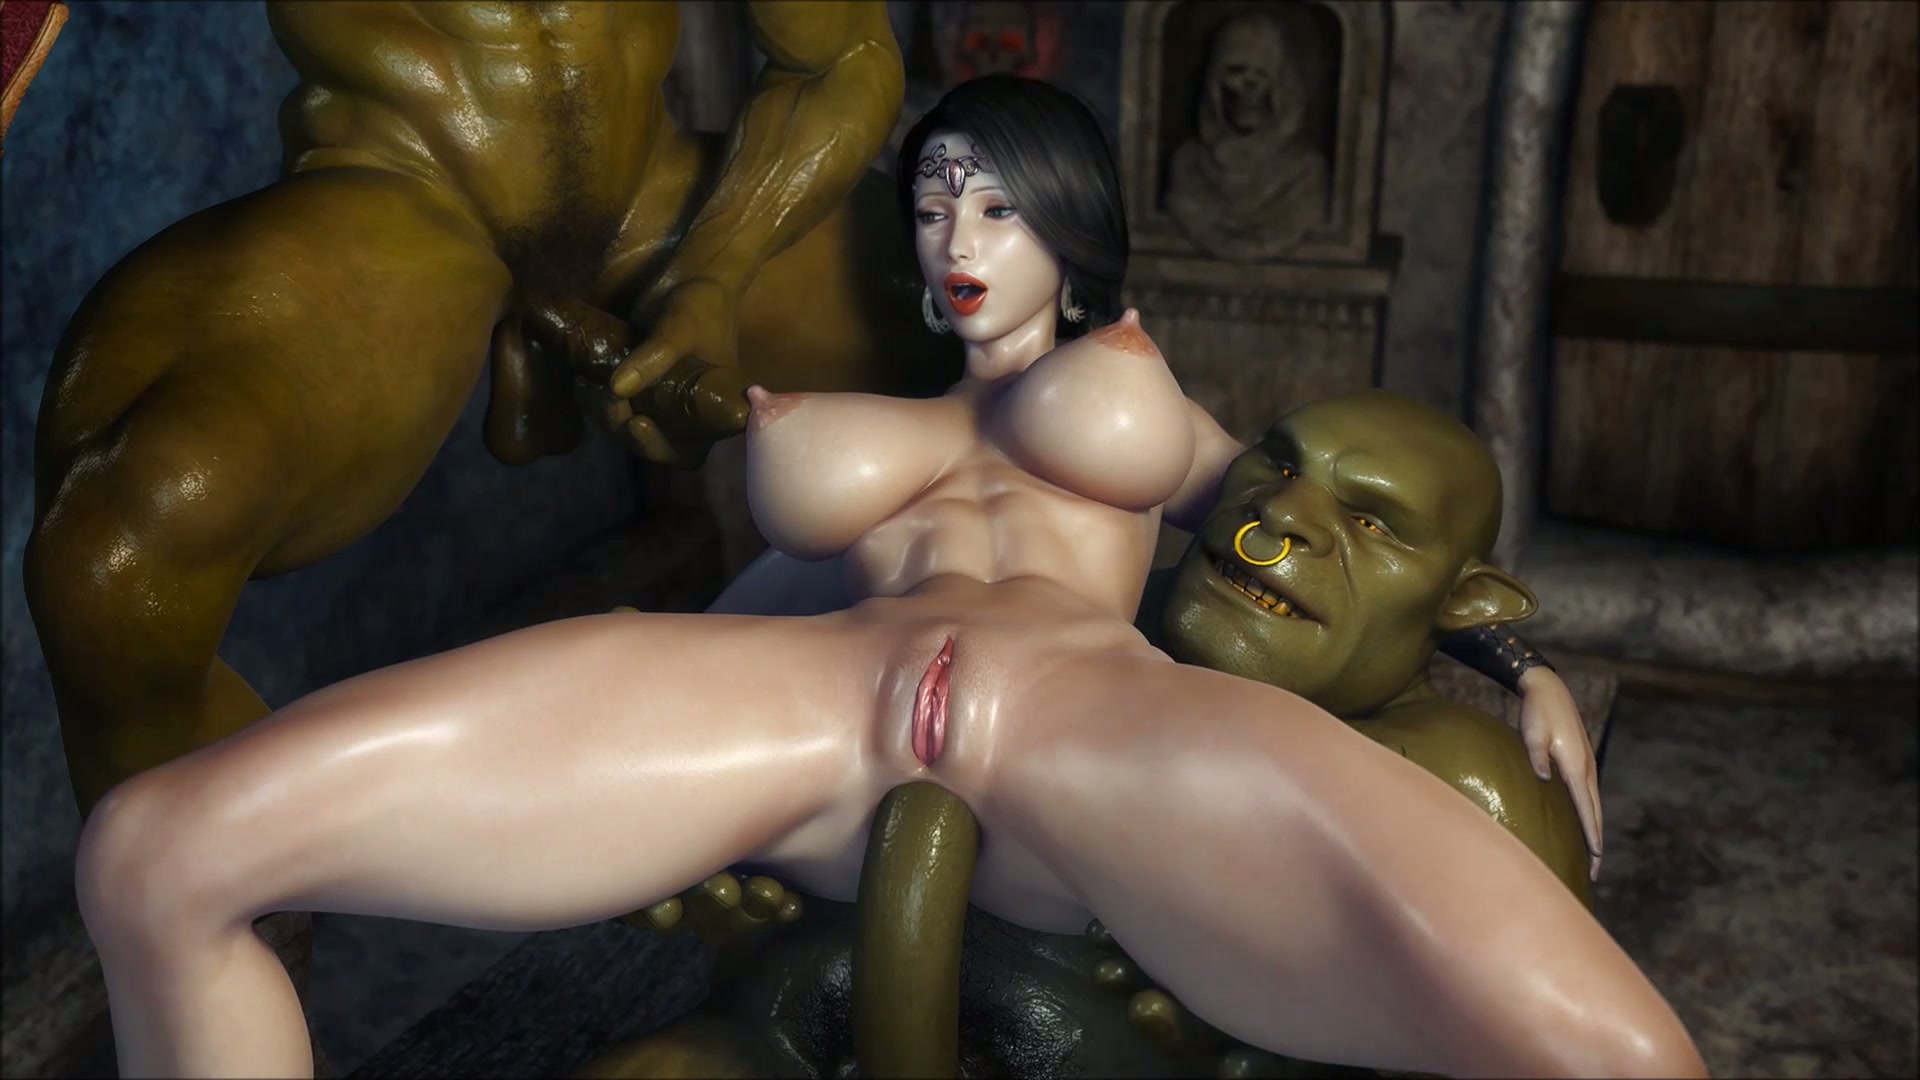 3d fantasy porn hentai video hardcore gallery